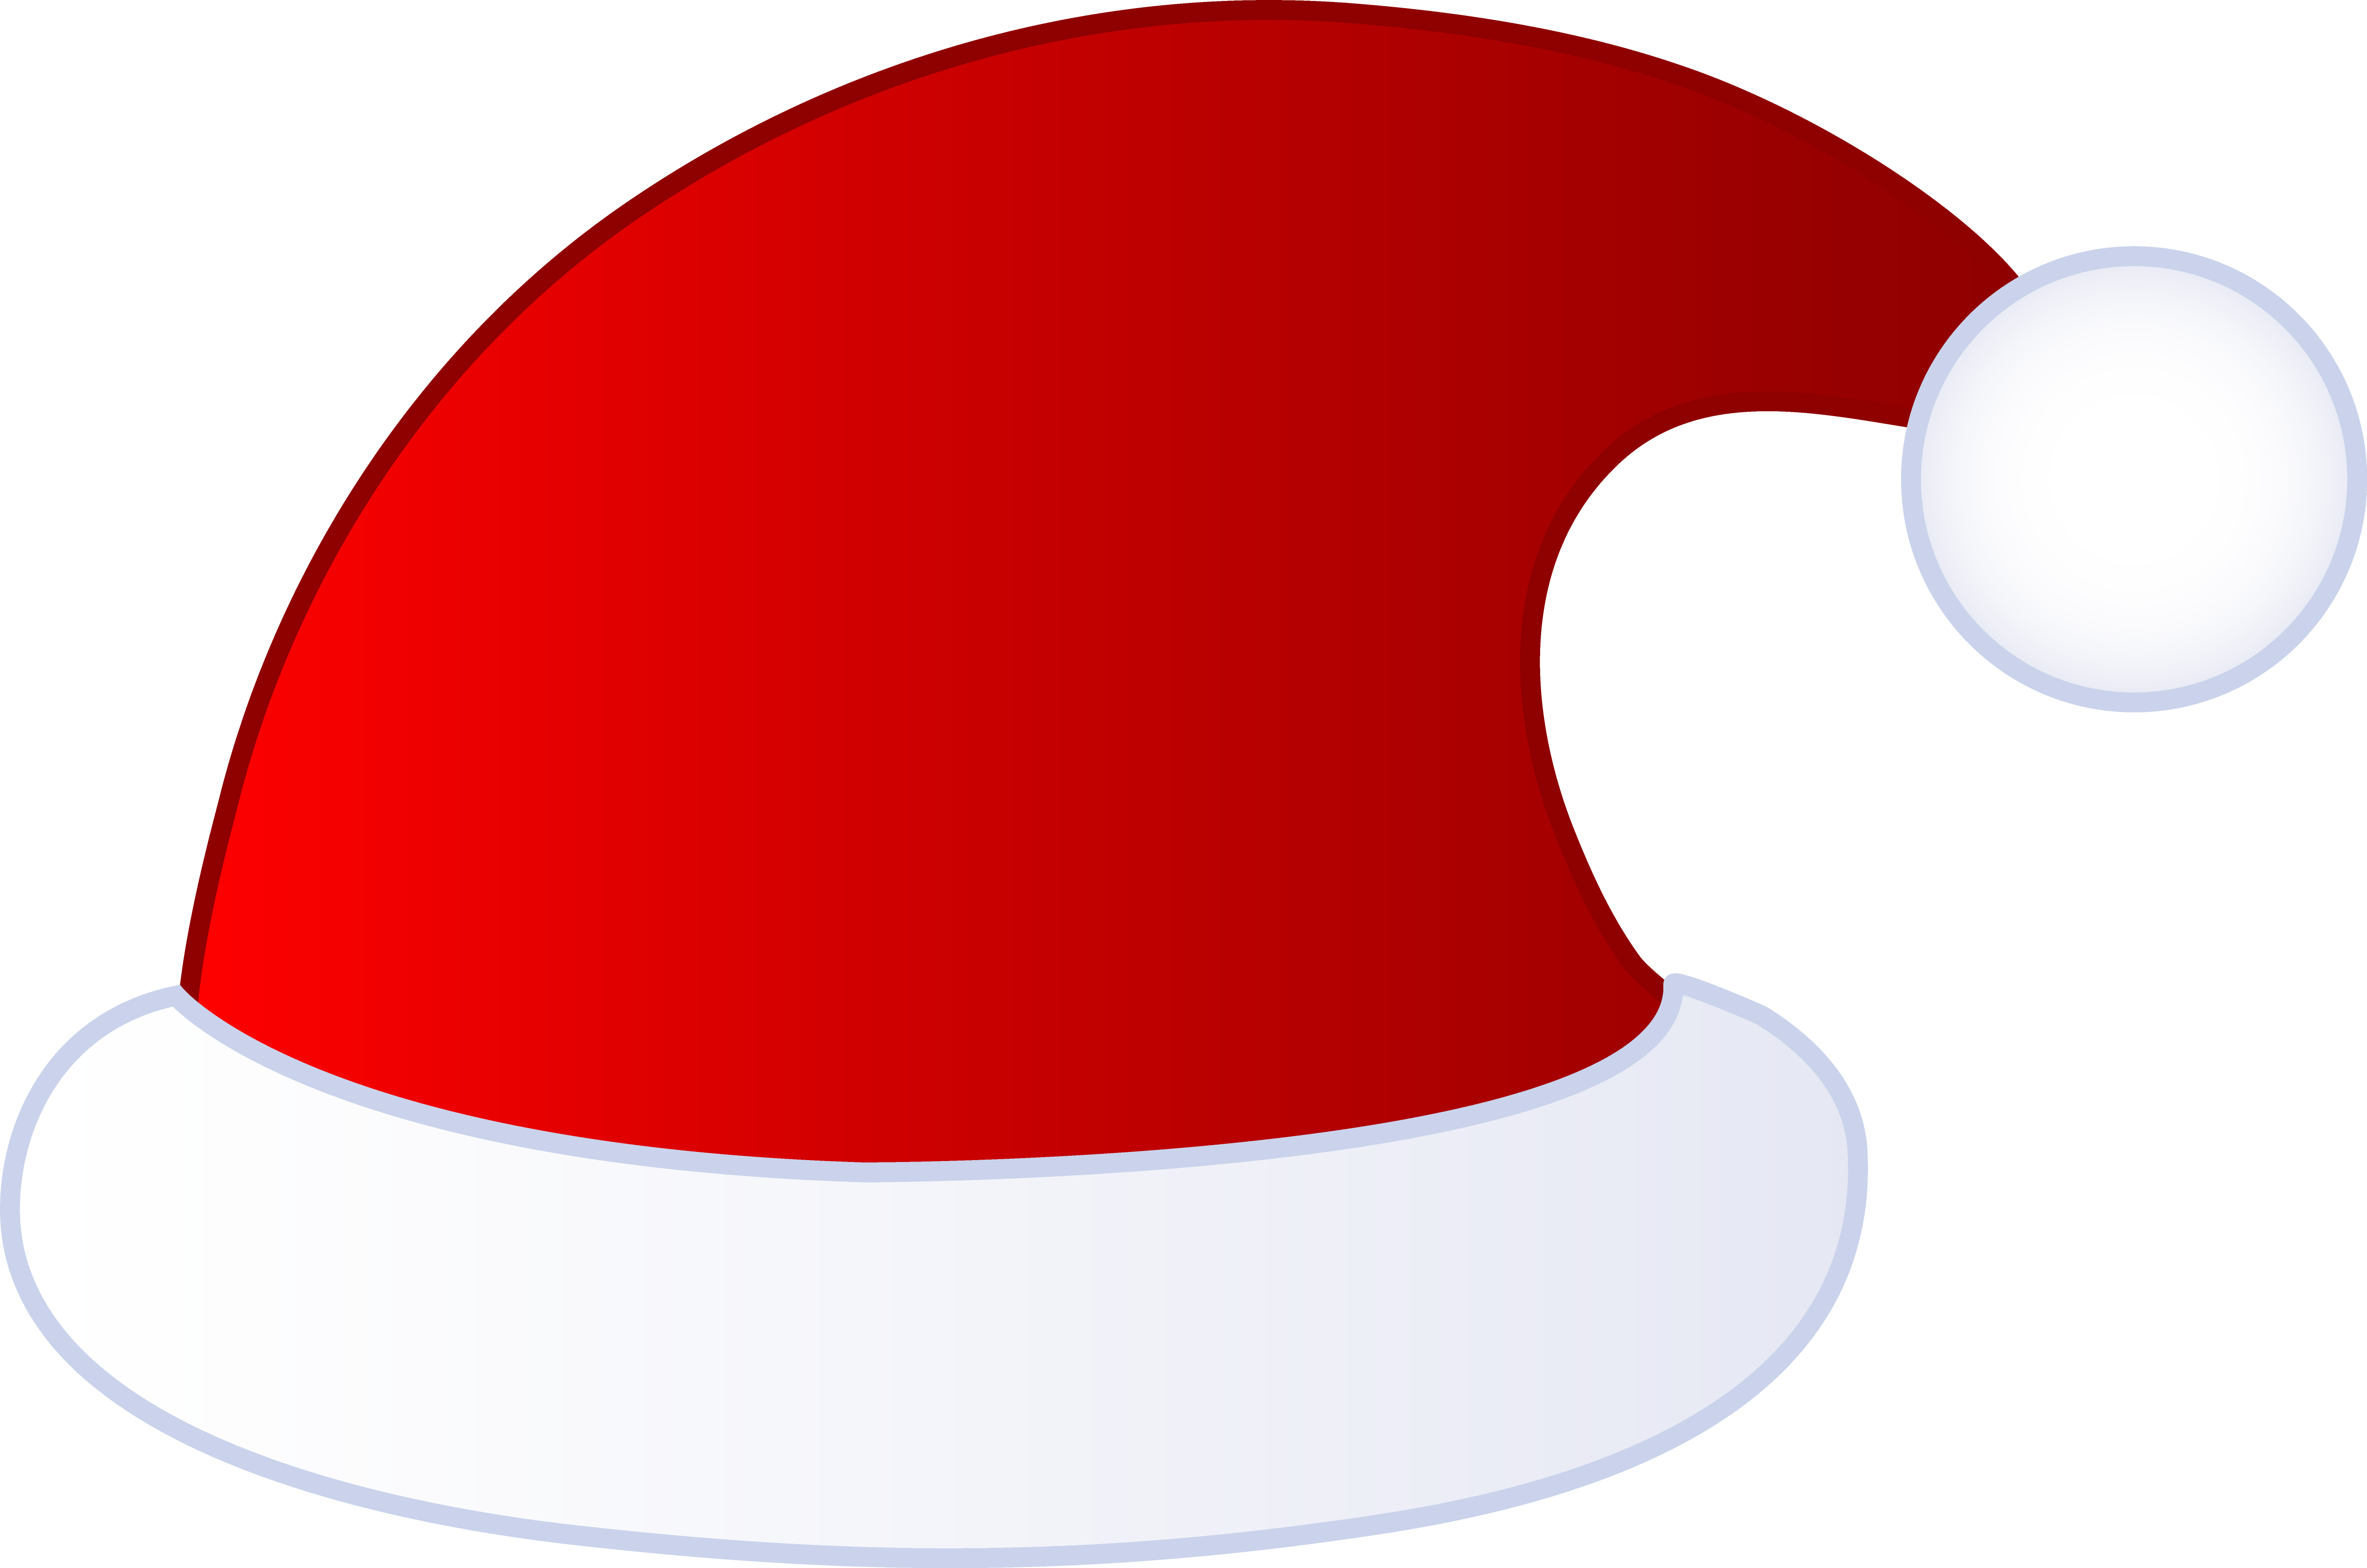 Christmas arrow clipart svg freeuse download Santa Hat Clipart xmas hat - Free Clipart on Dumielauxepices.net svg freeuse download